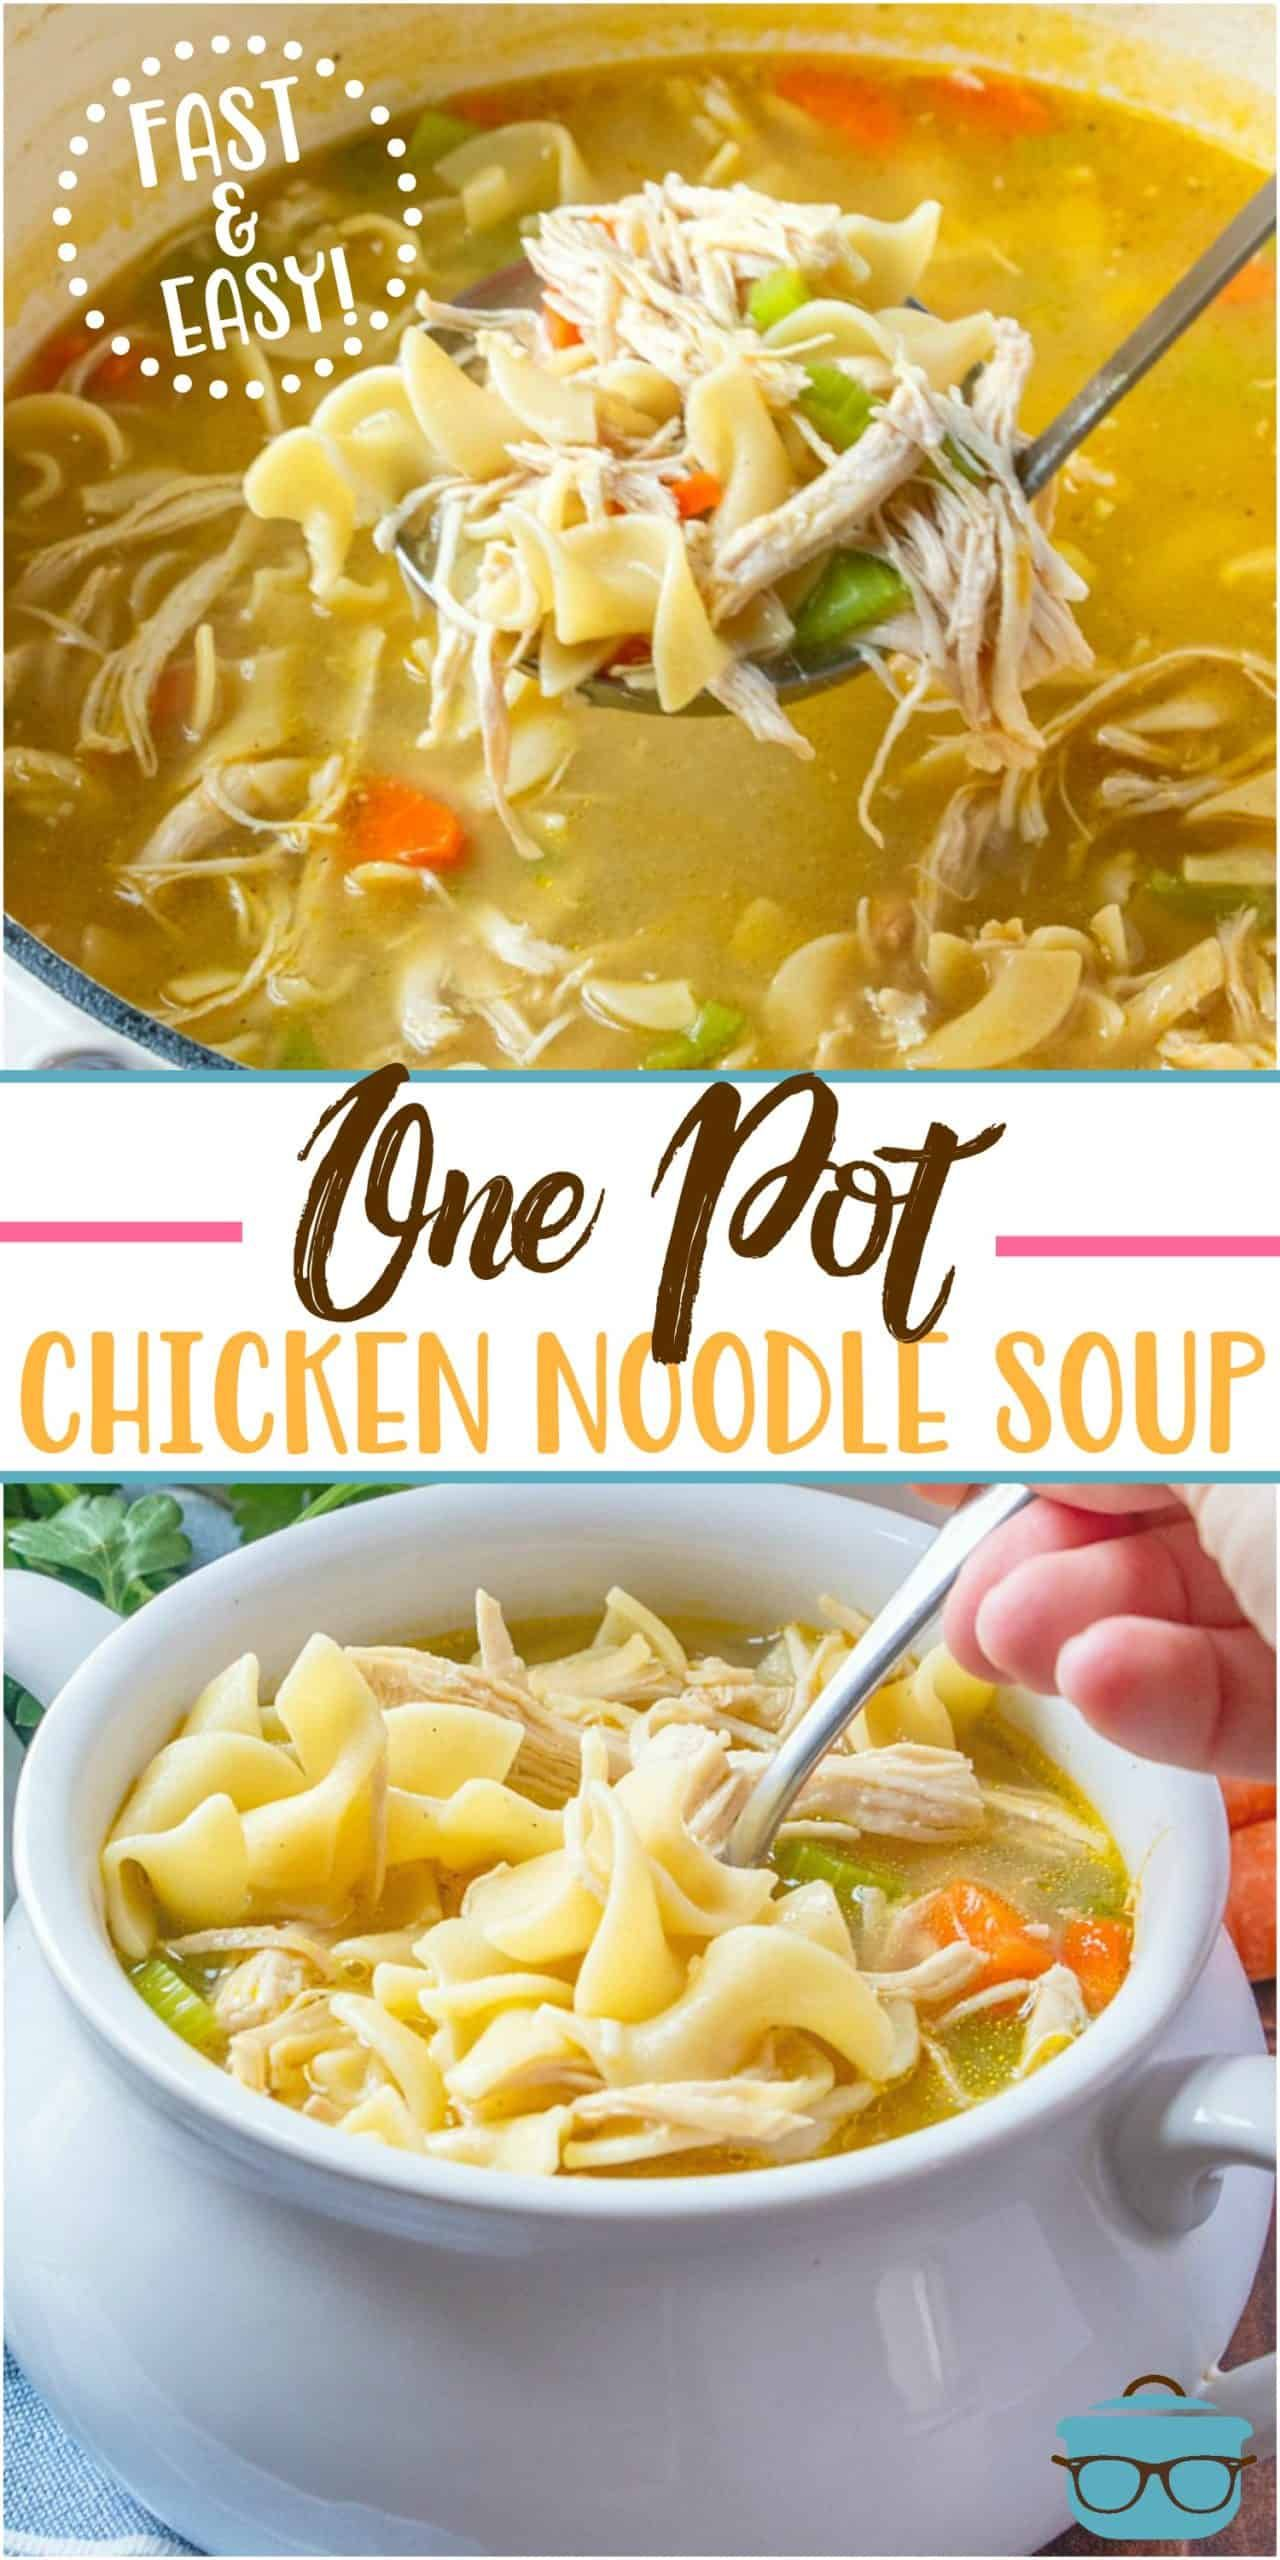 ONE POT CHICKEN NOODLE SOUP (+Video) | The Country Cook